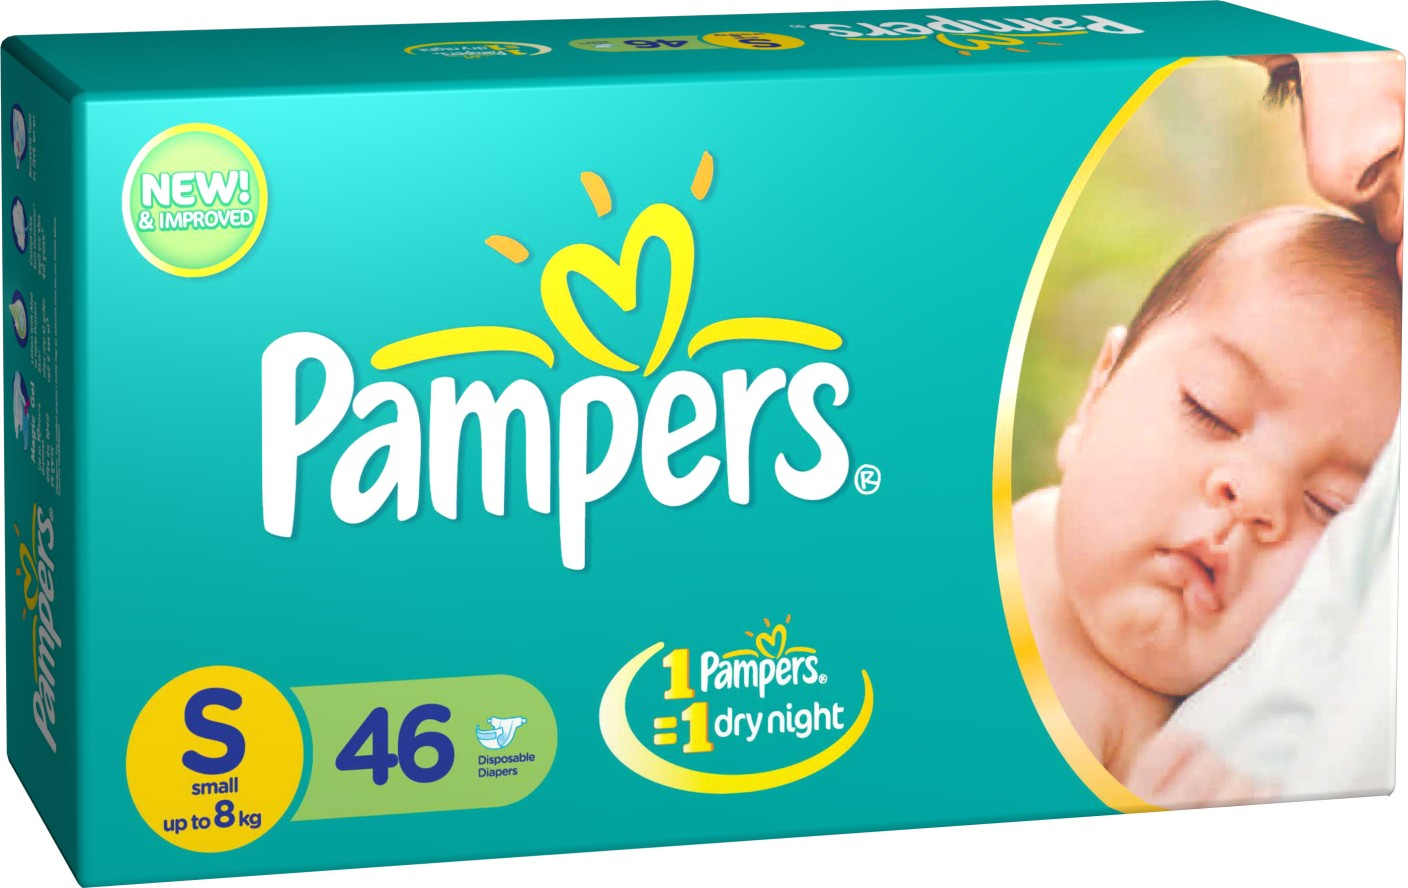 pampers diapers logo - photo #17